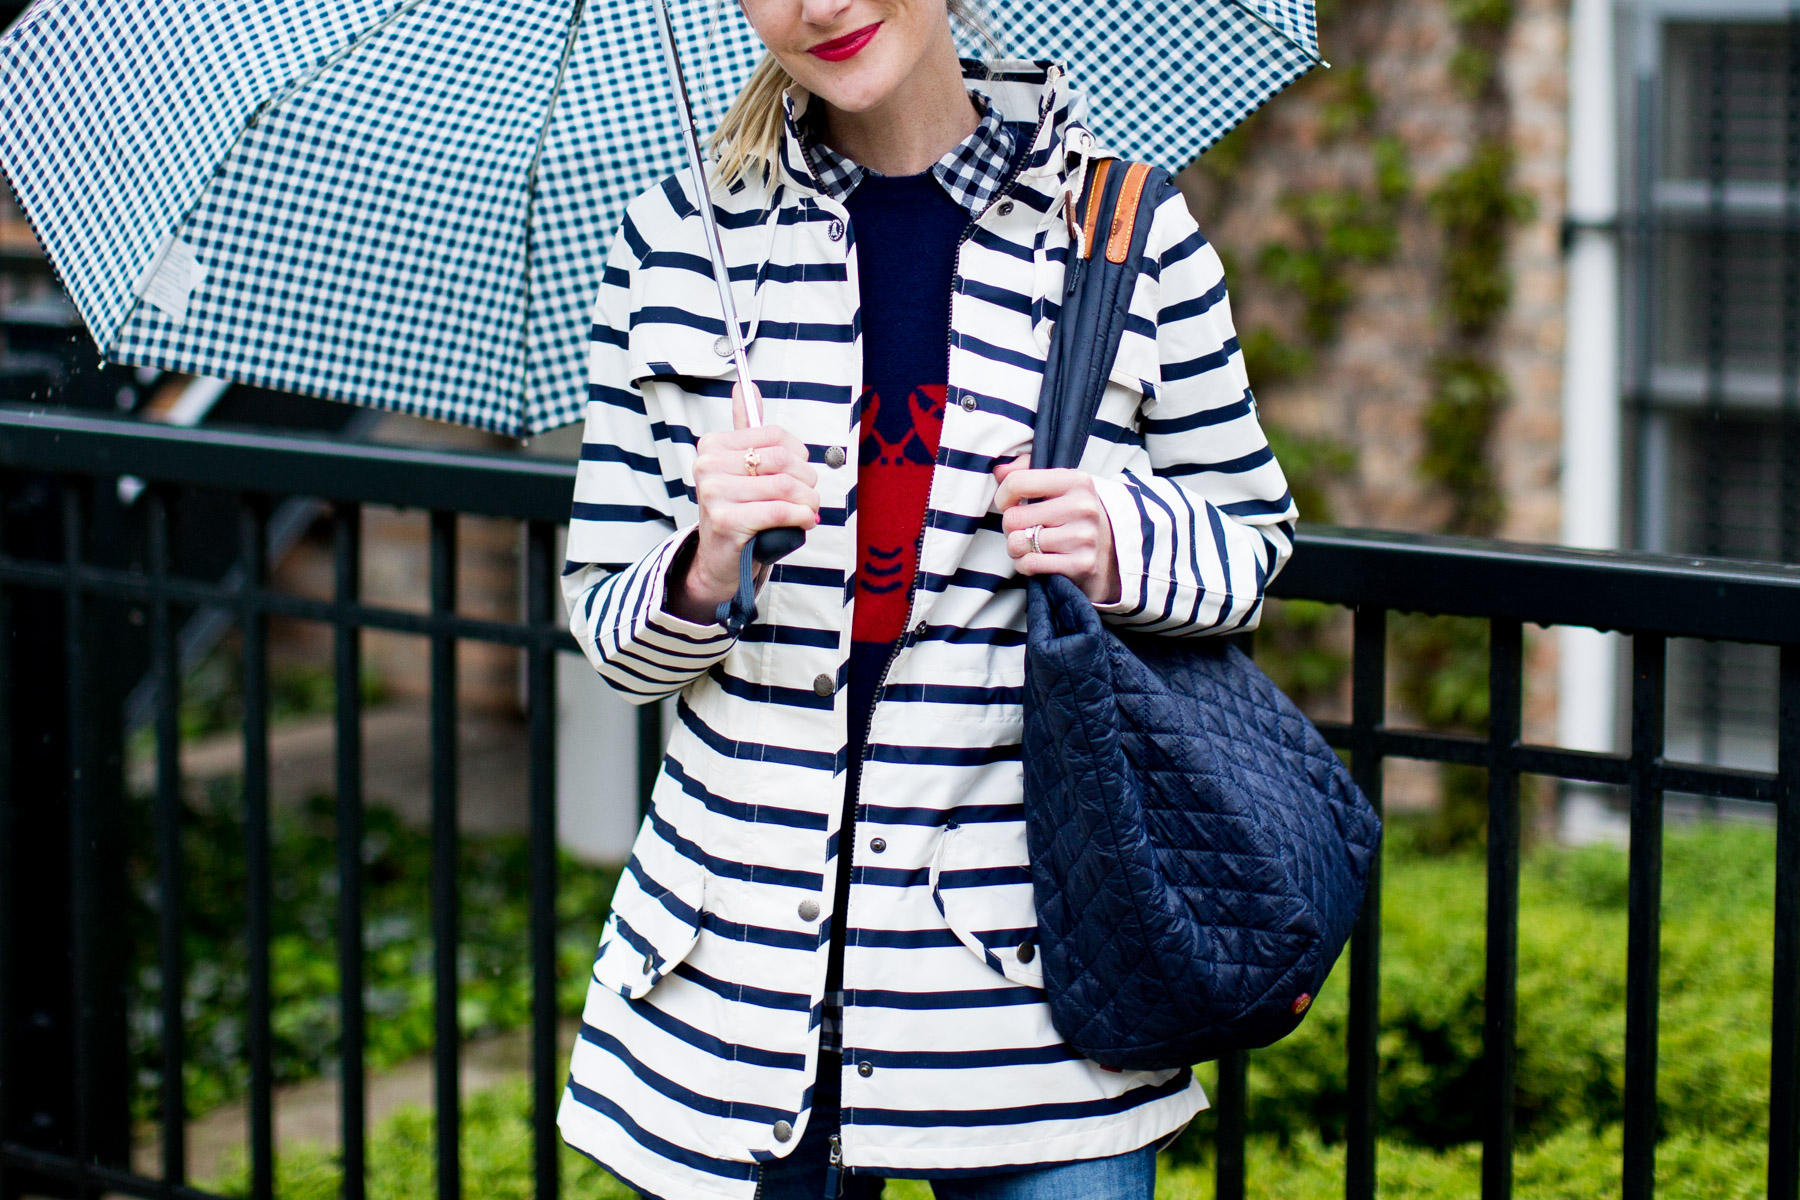 Barbour Trevose Stripe Raincoat c/o Tuckernuck